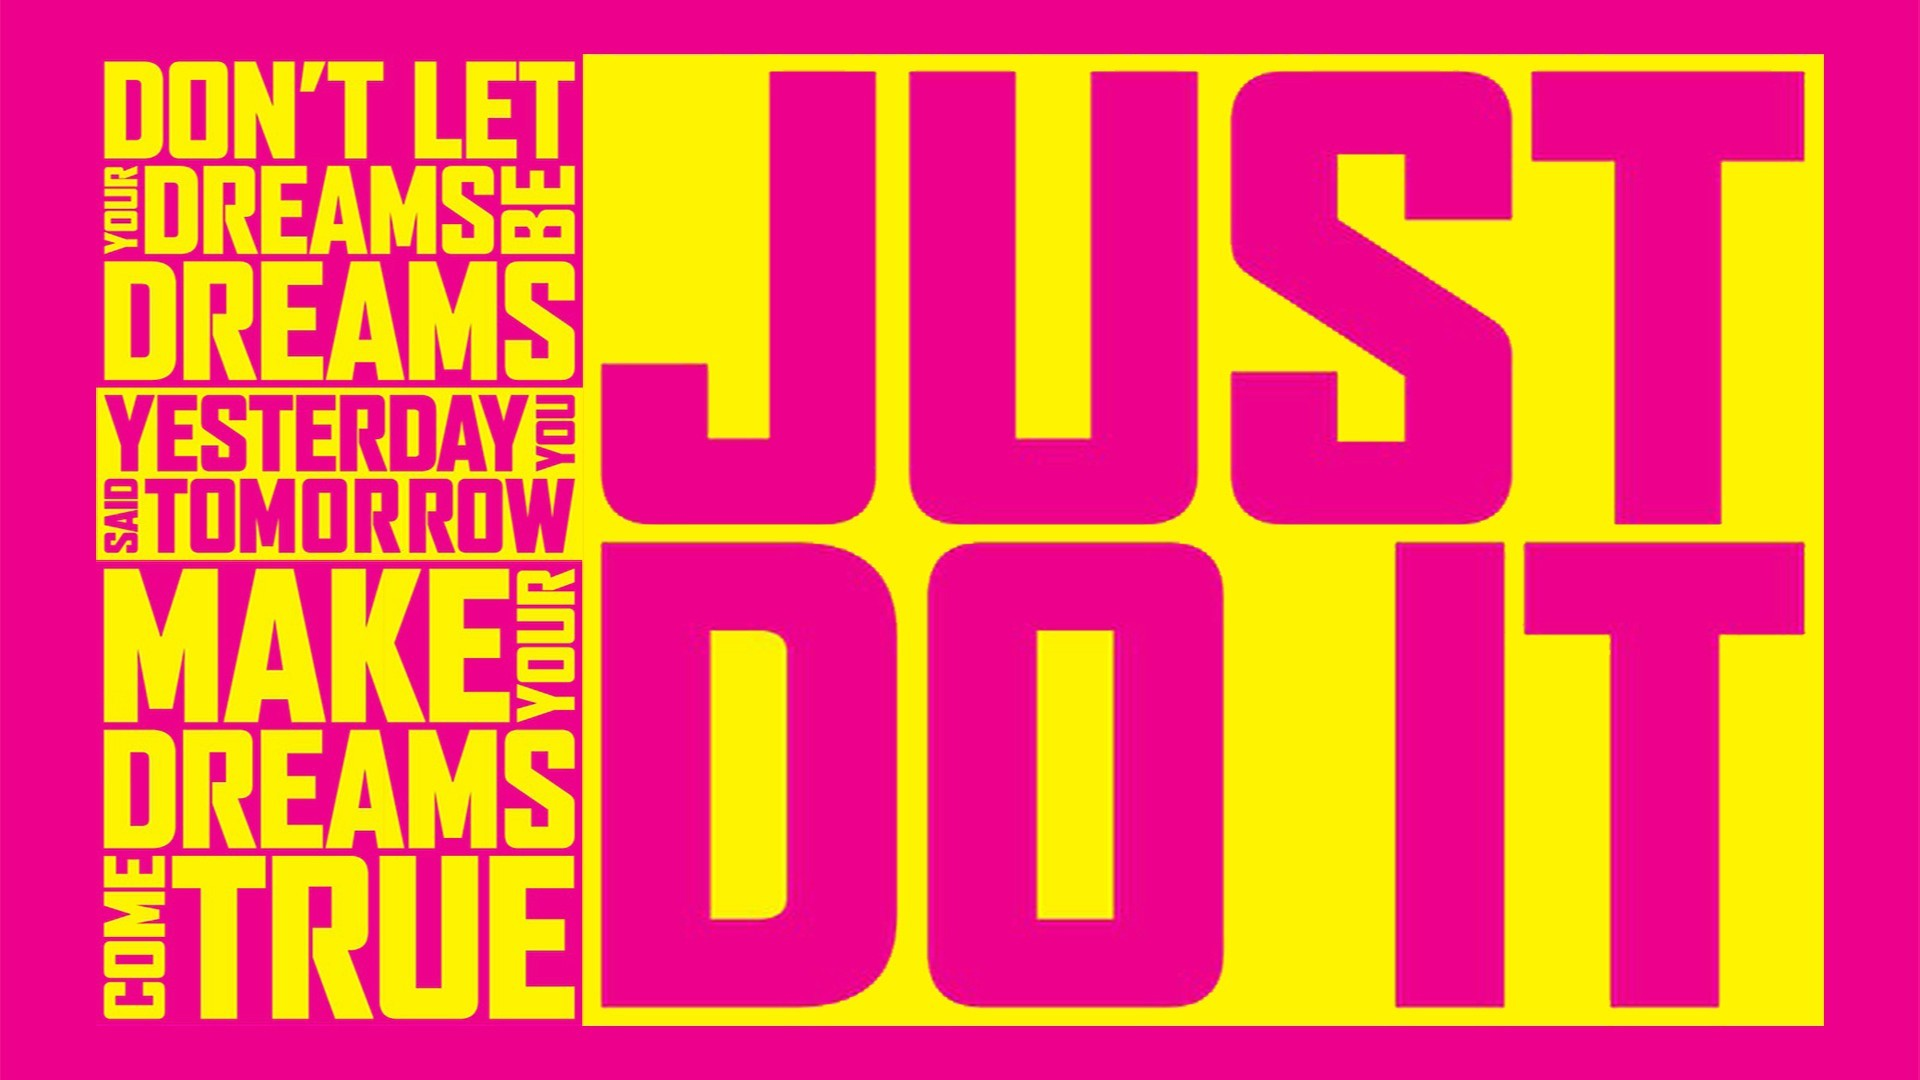 Nike Just Do It Pink Wallpapers Background : Sports Wallpaper .